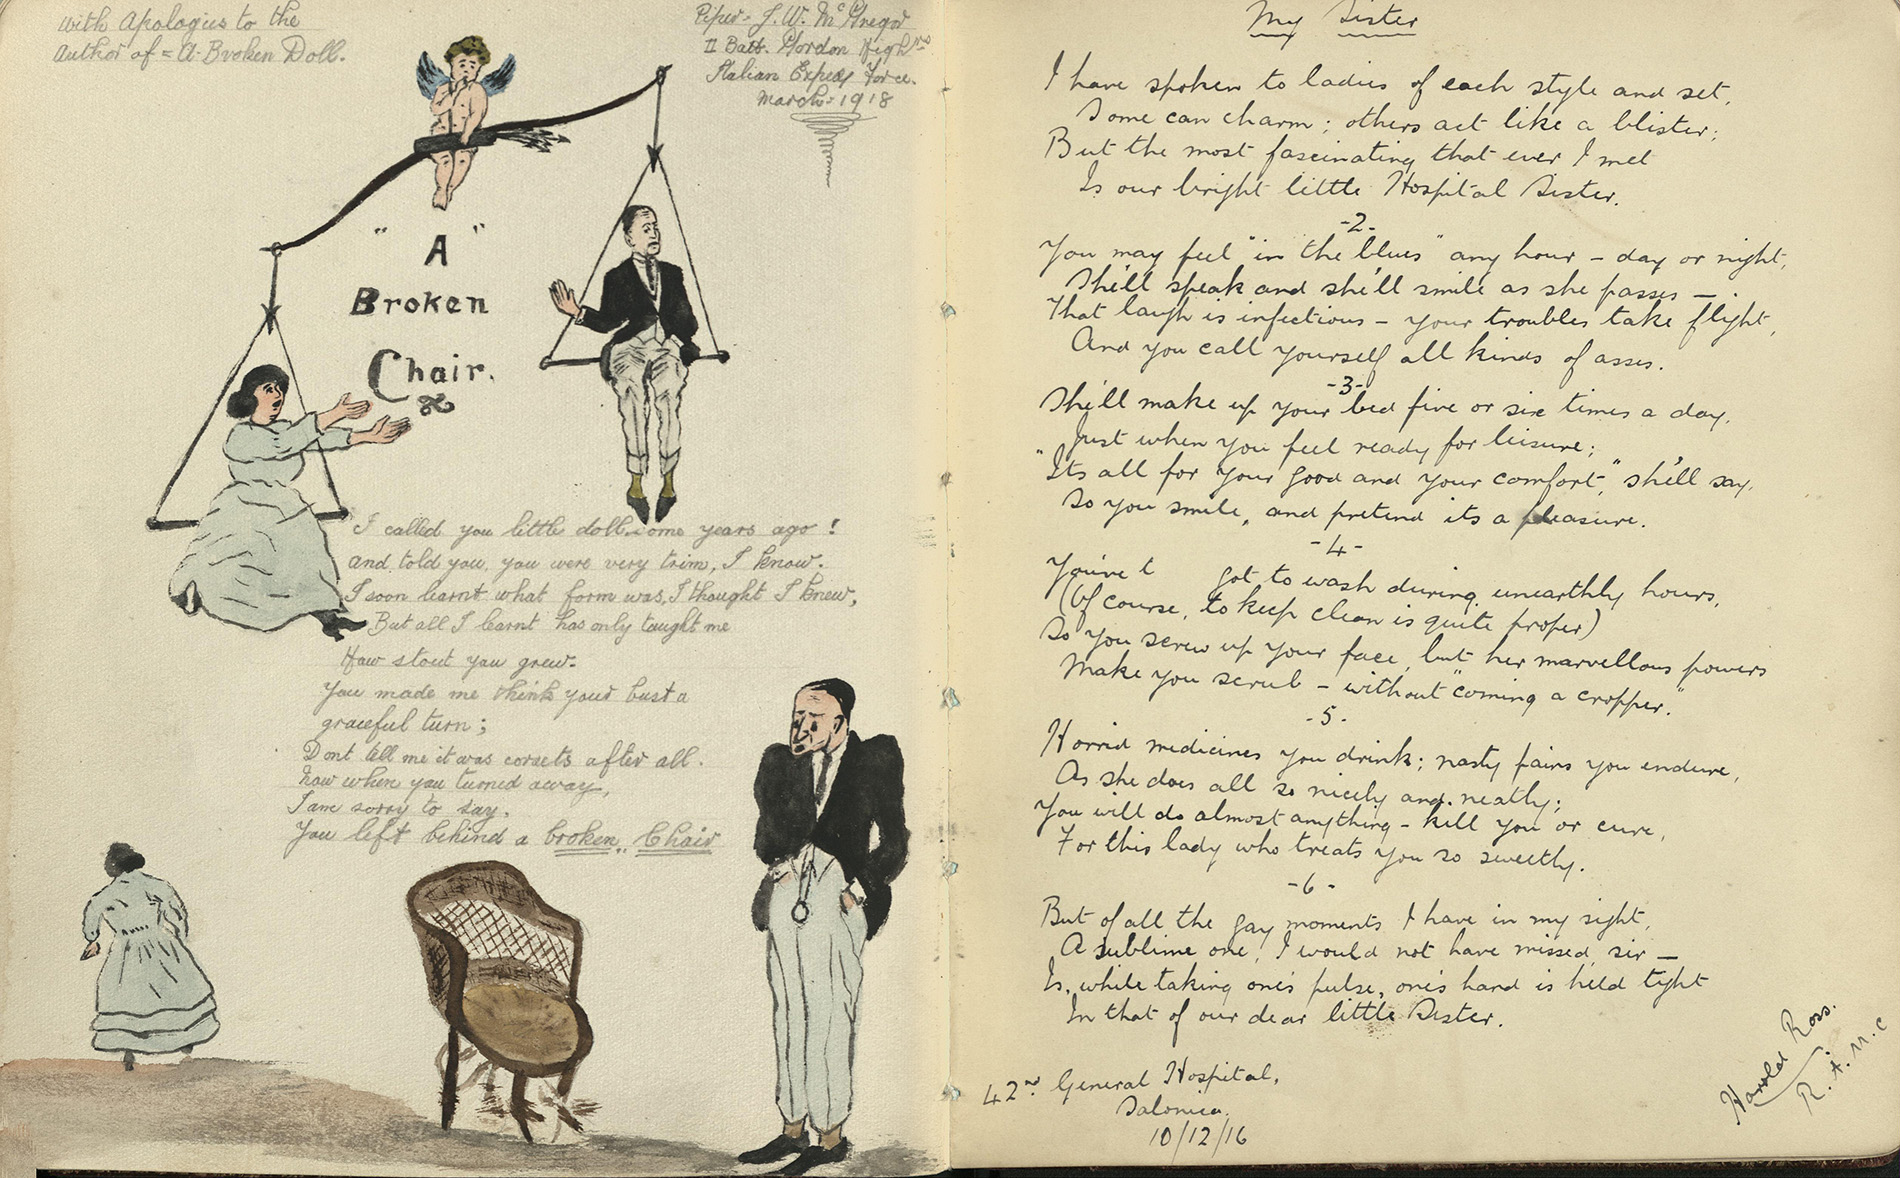 Mabel Pearce's scrapbook